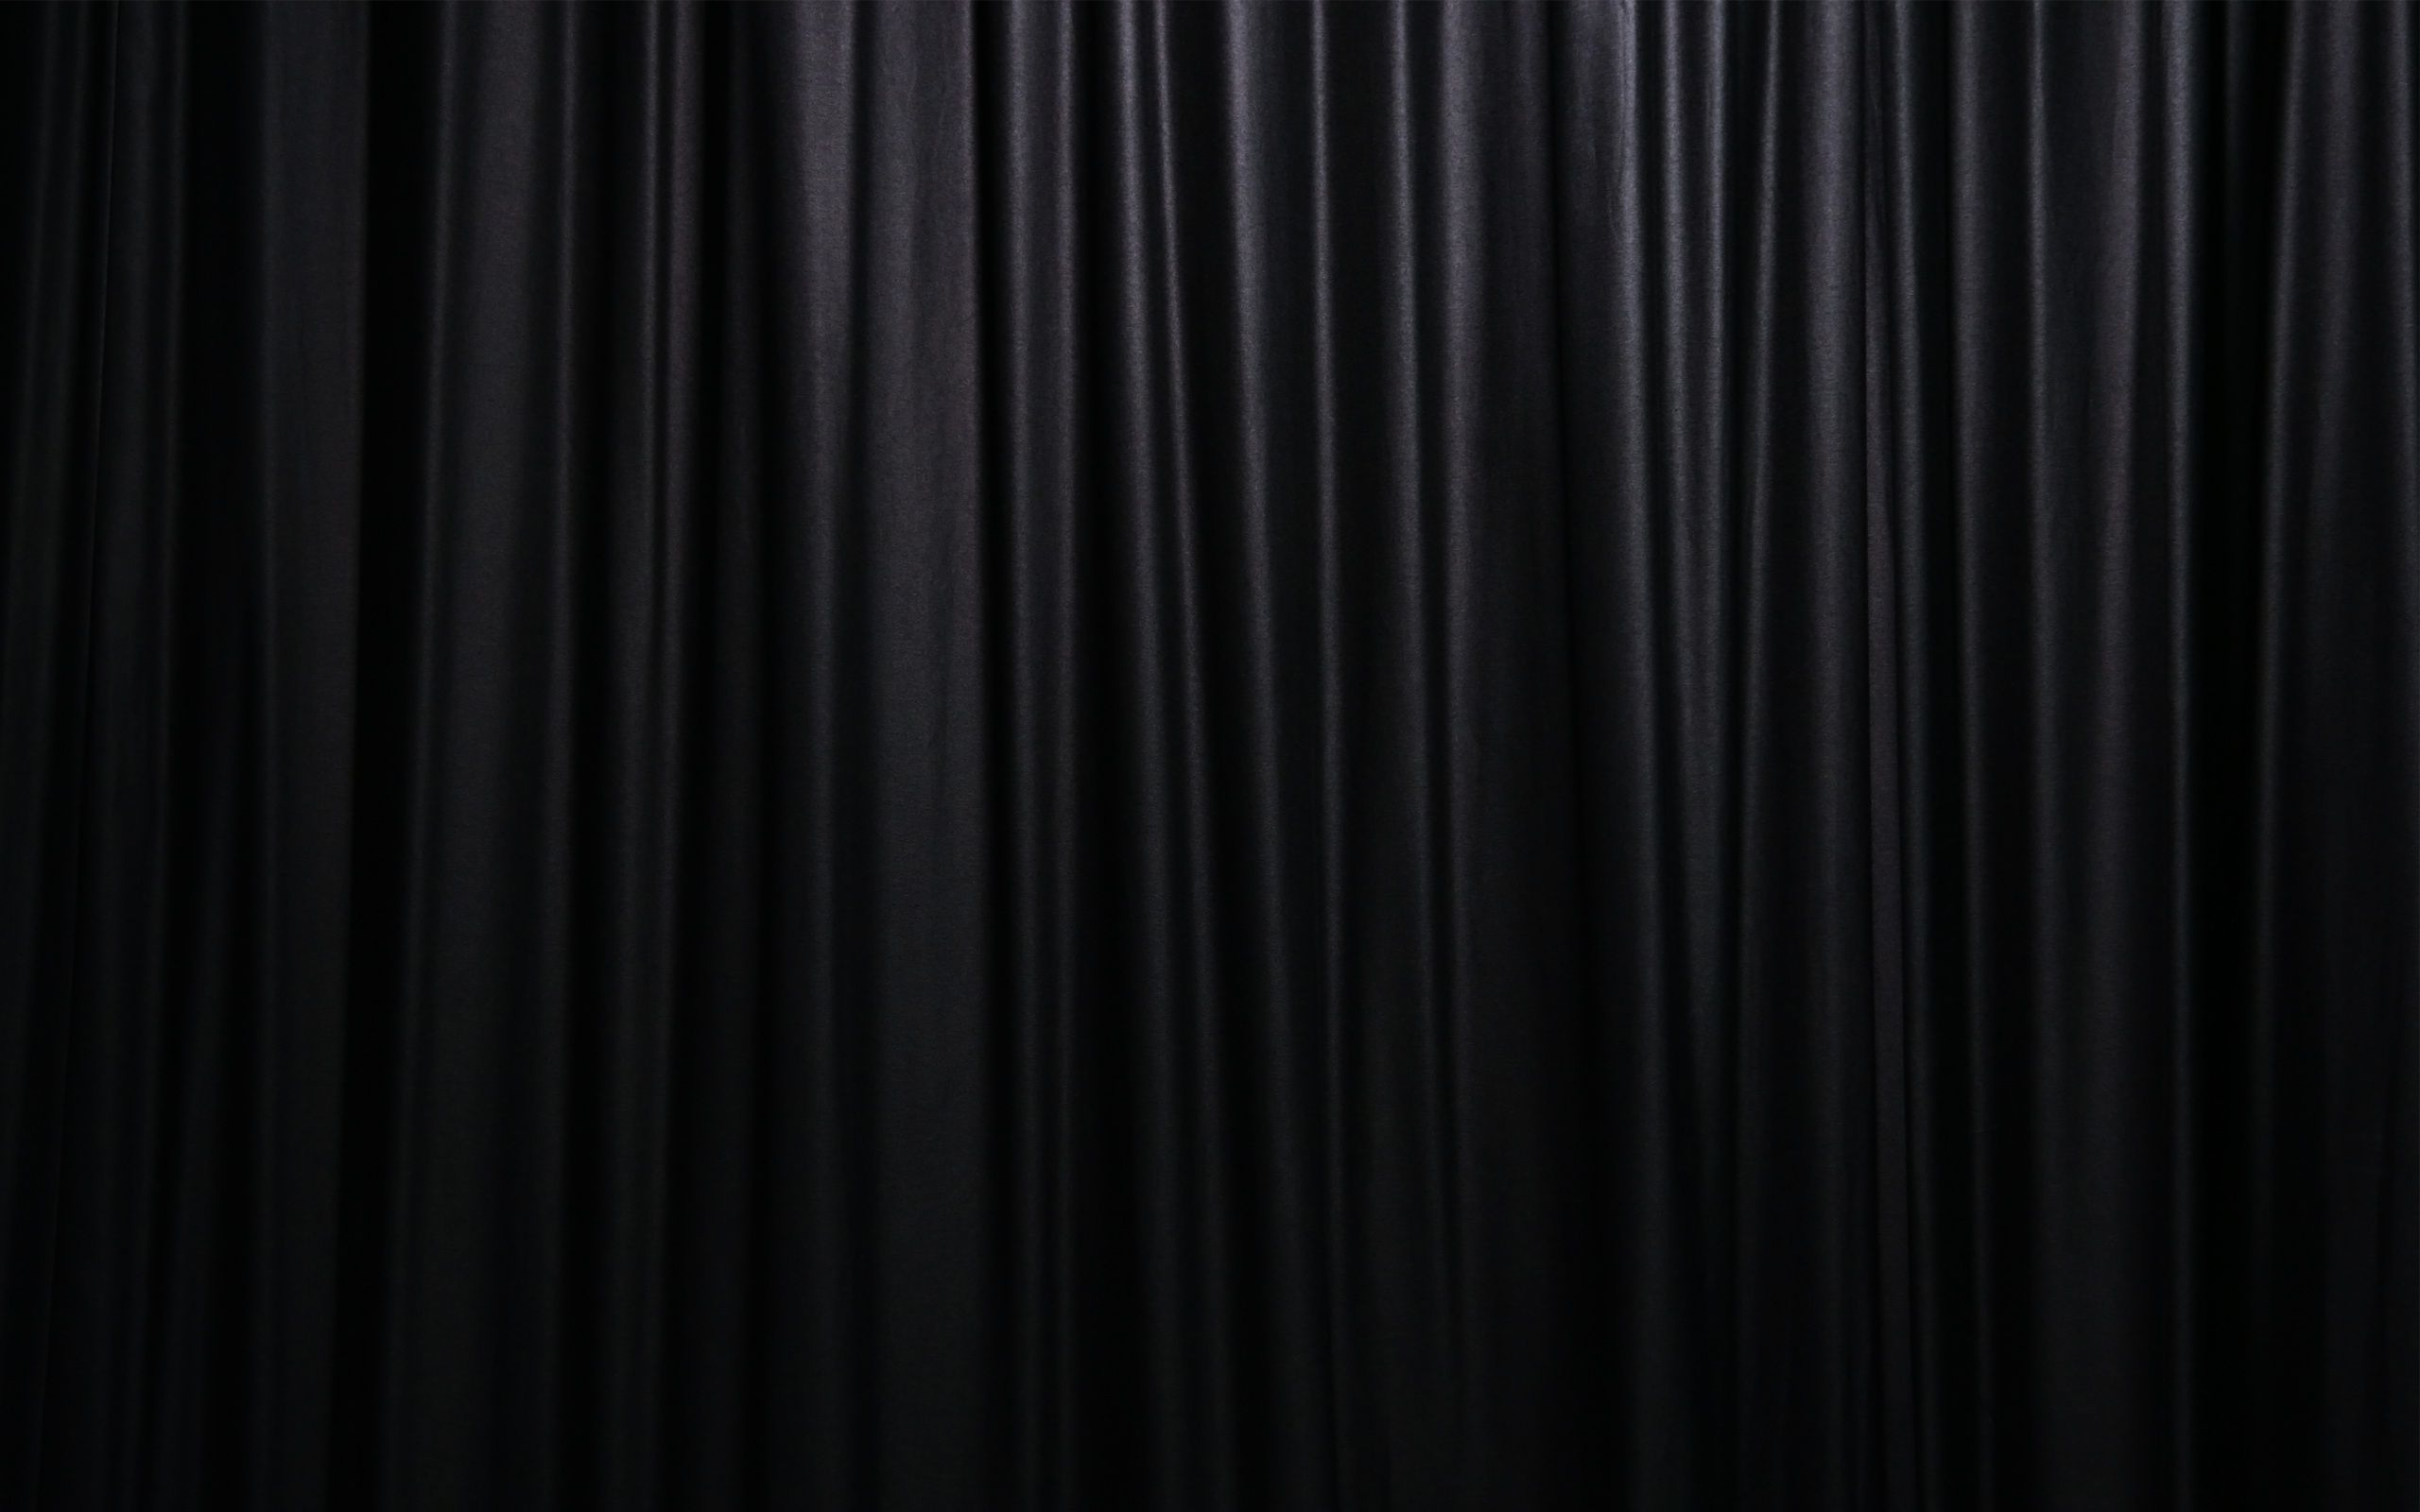 Black Curtains Part - 22: Black Curtain Wallpaper - WallpaperSafari